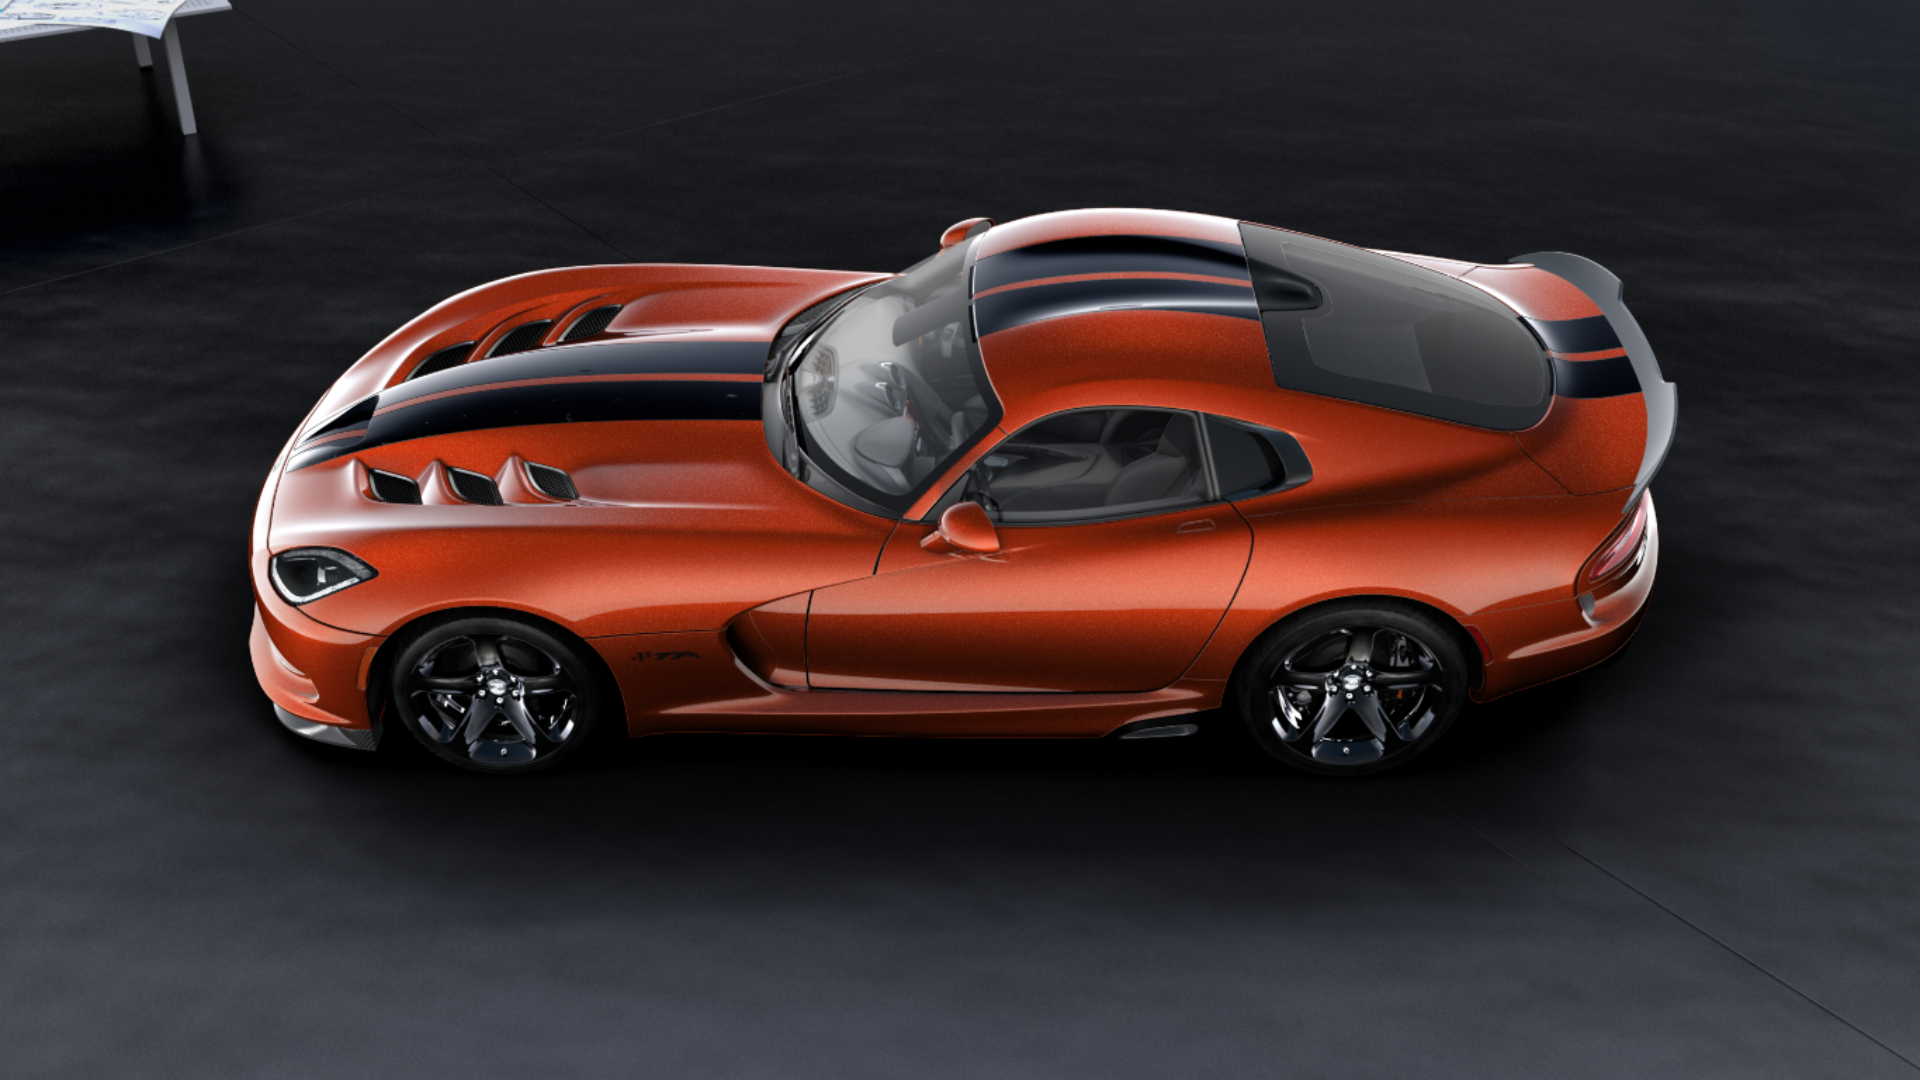 Create Your Own Viper ResCars